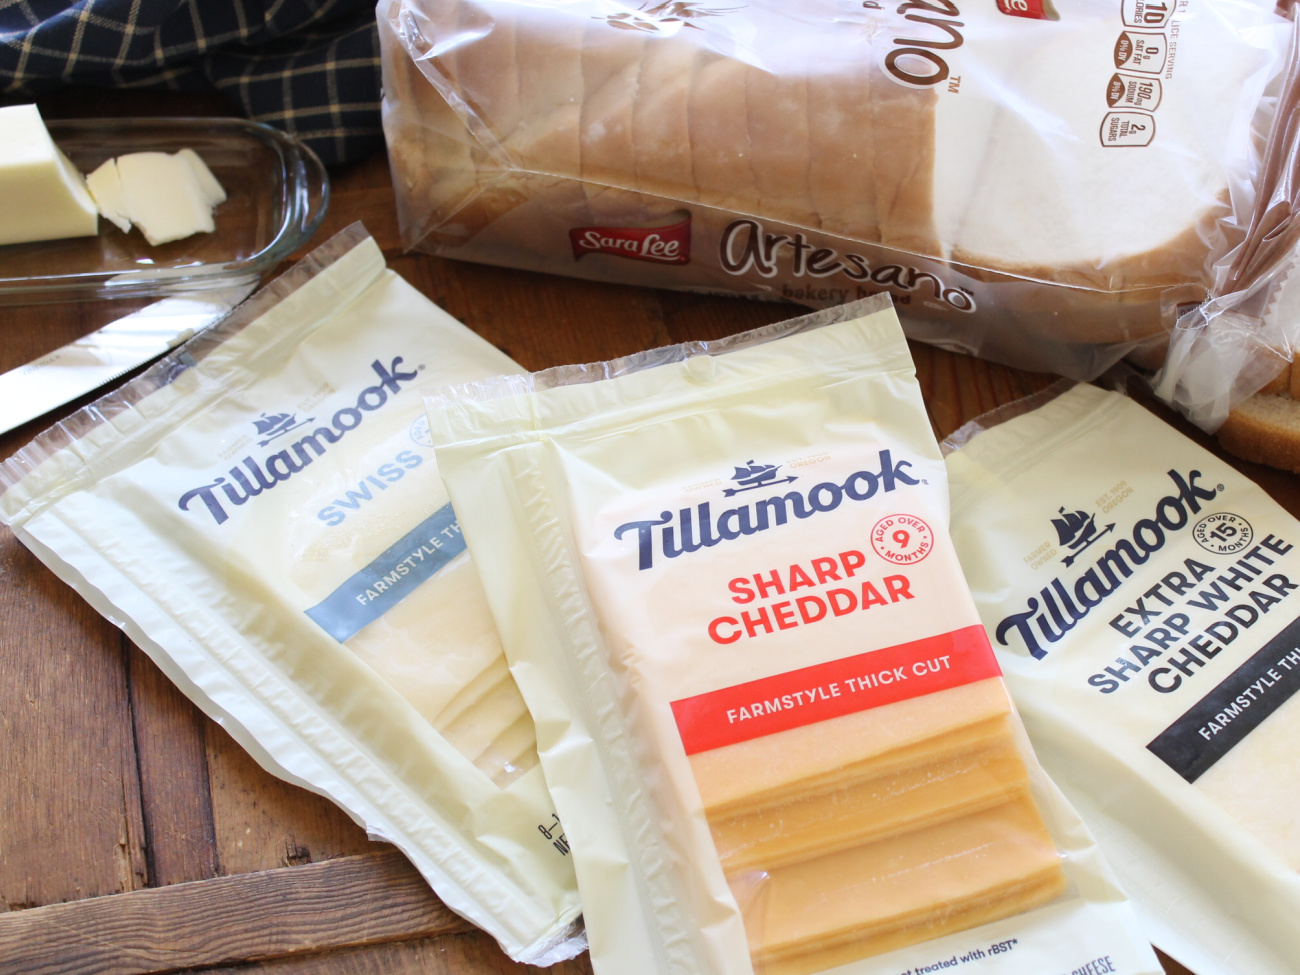 Upgrade Your Grilled Cheese & Grab Savings On Tillamook Cheese At Publix on I Heart Publix